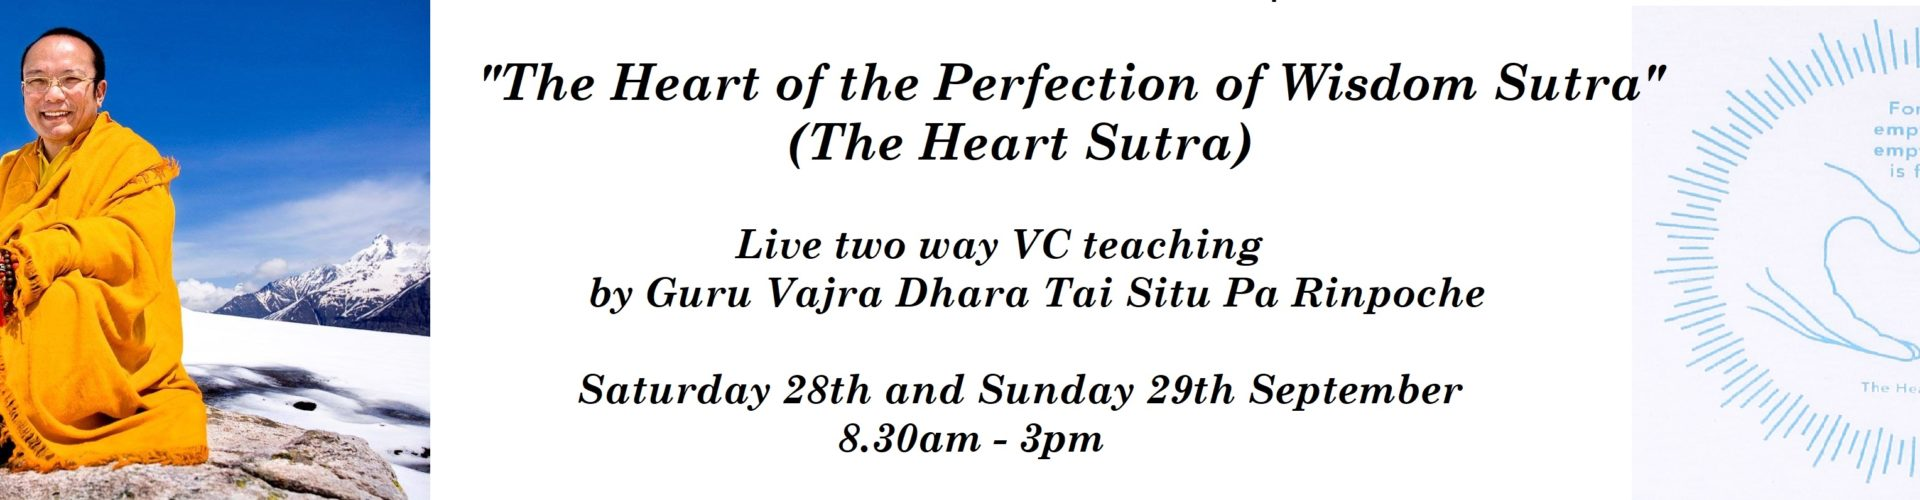 The Heart of the Perfection of Wisdom Sutra